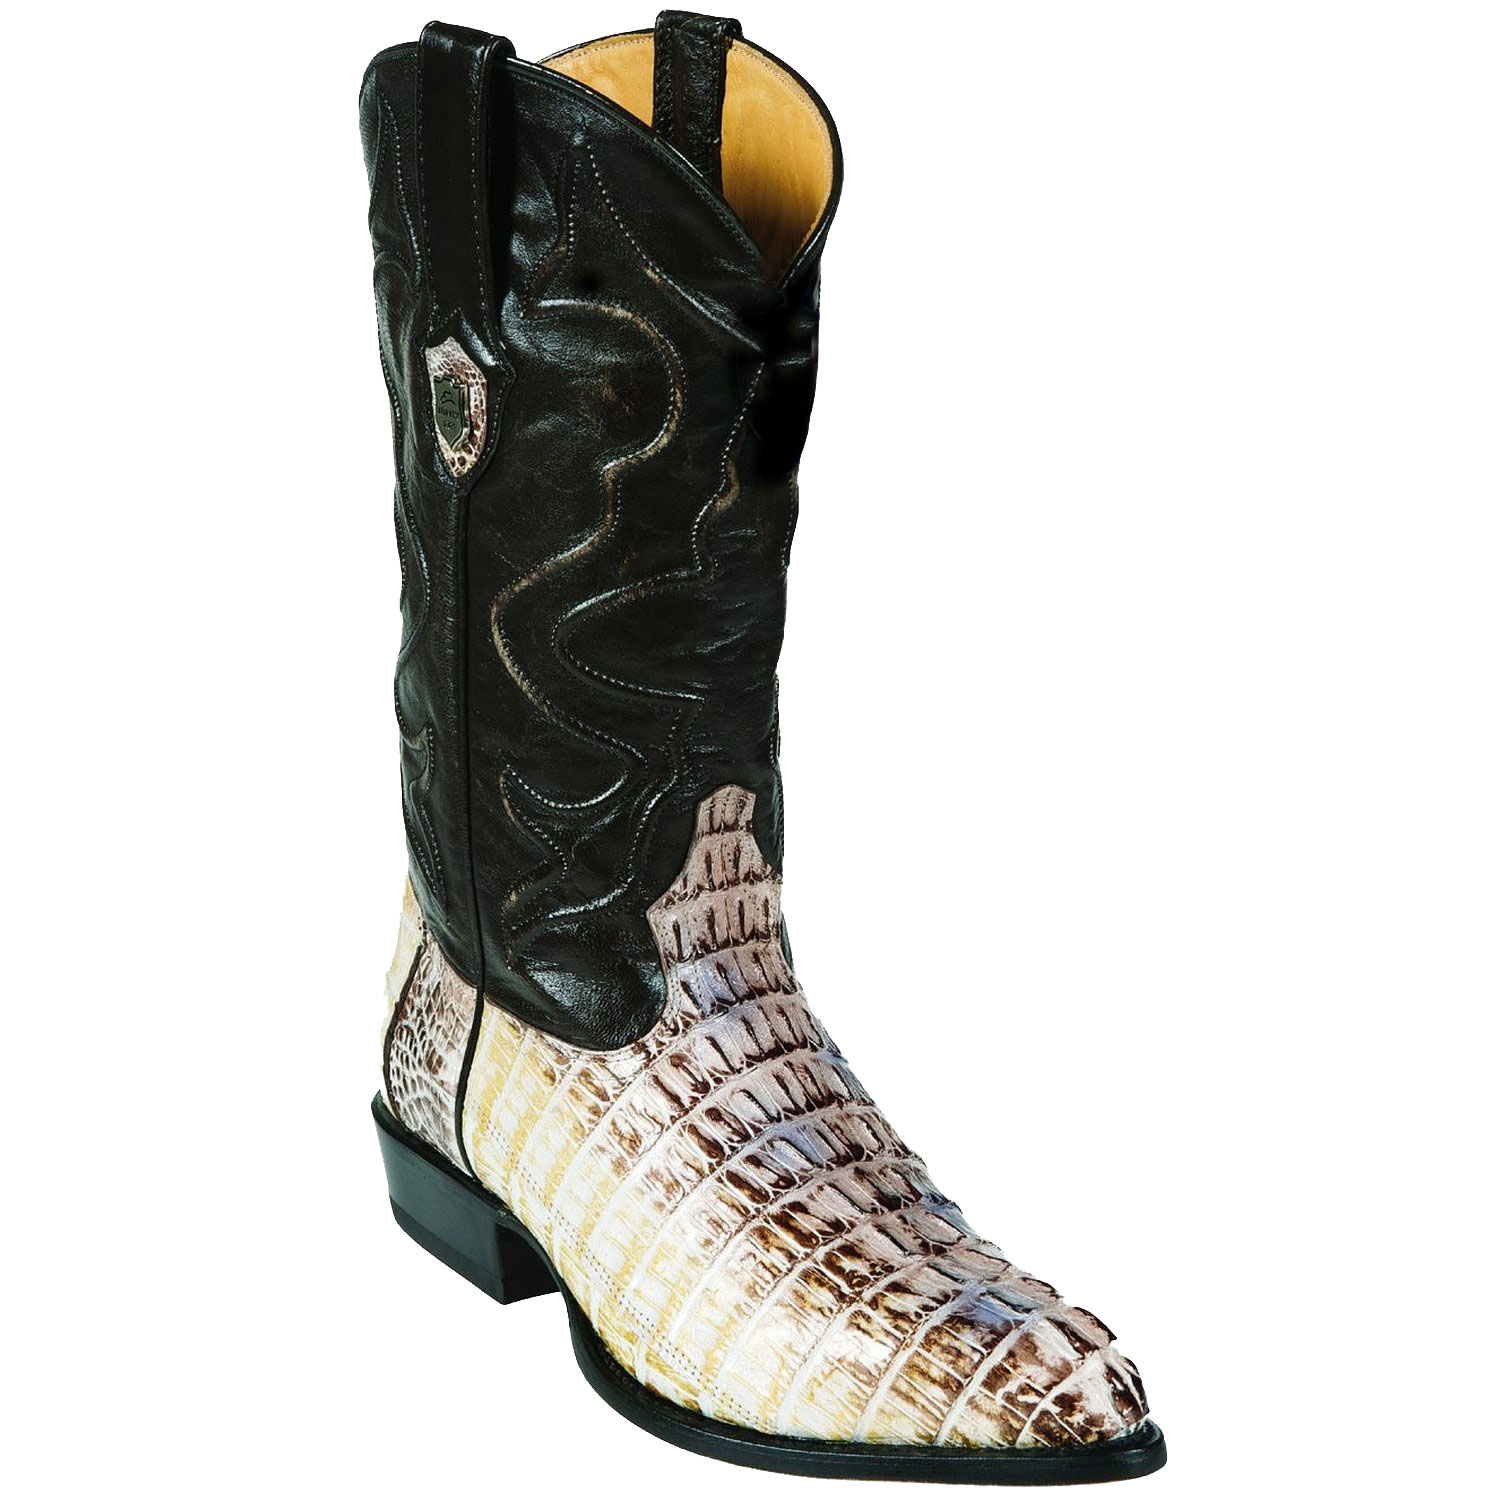 MensUSA.com Wild West J Toe Natural Caiman Tail Cowboy Boots(Exchange only policy) at Sears.com